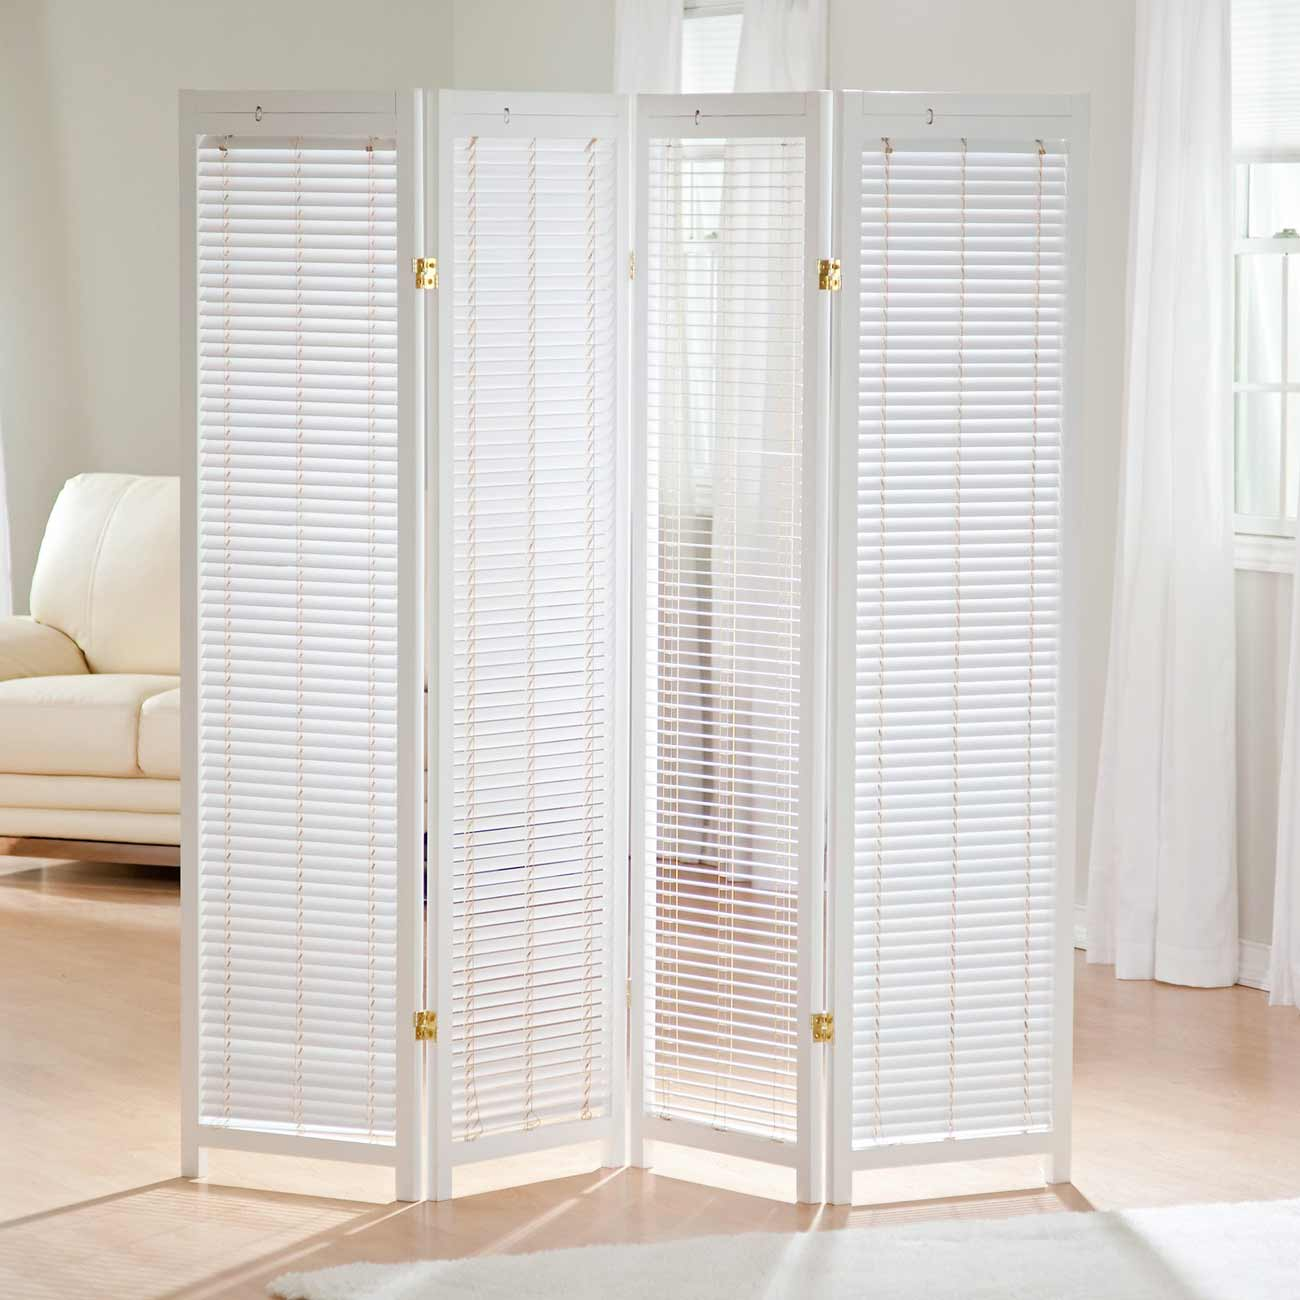 4 panels white Tranquality room divider shutter screen